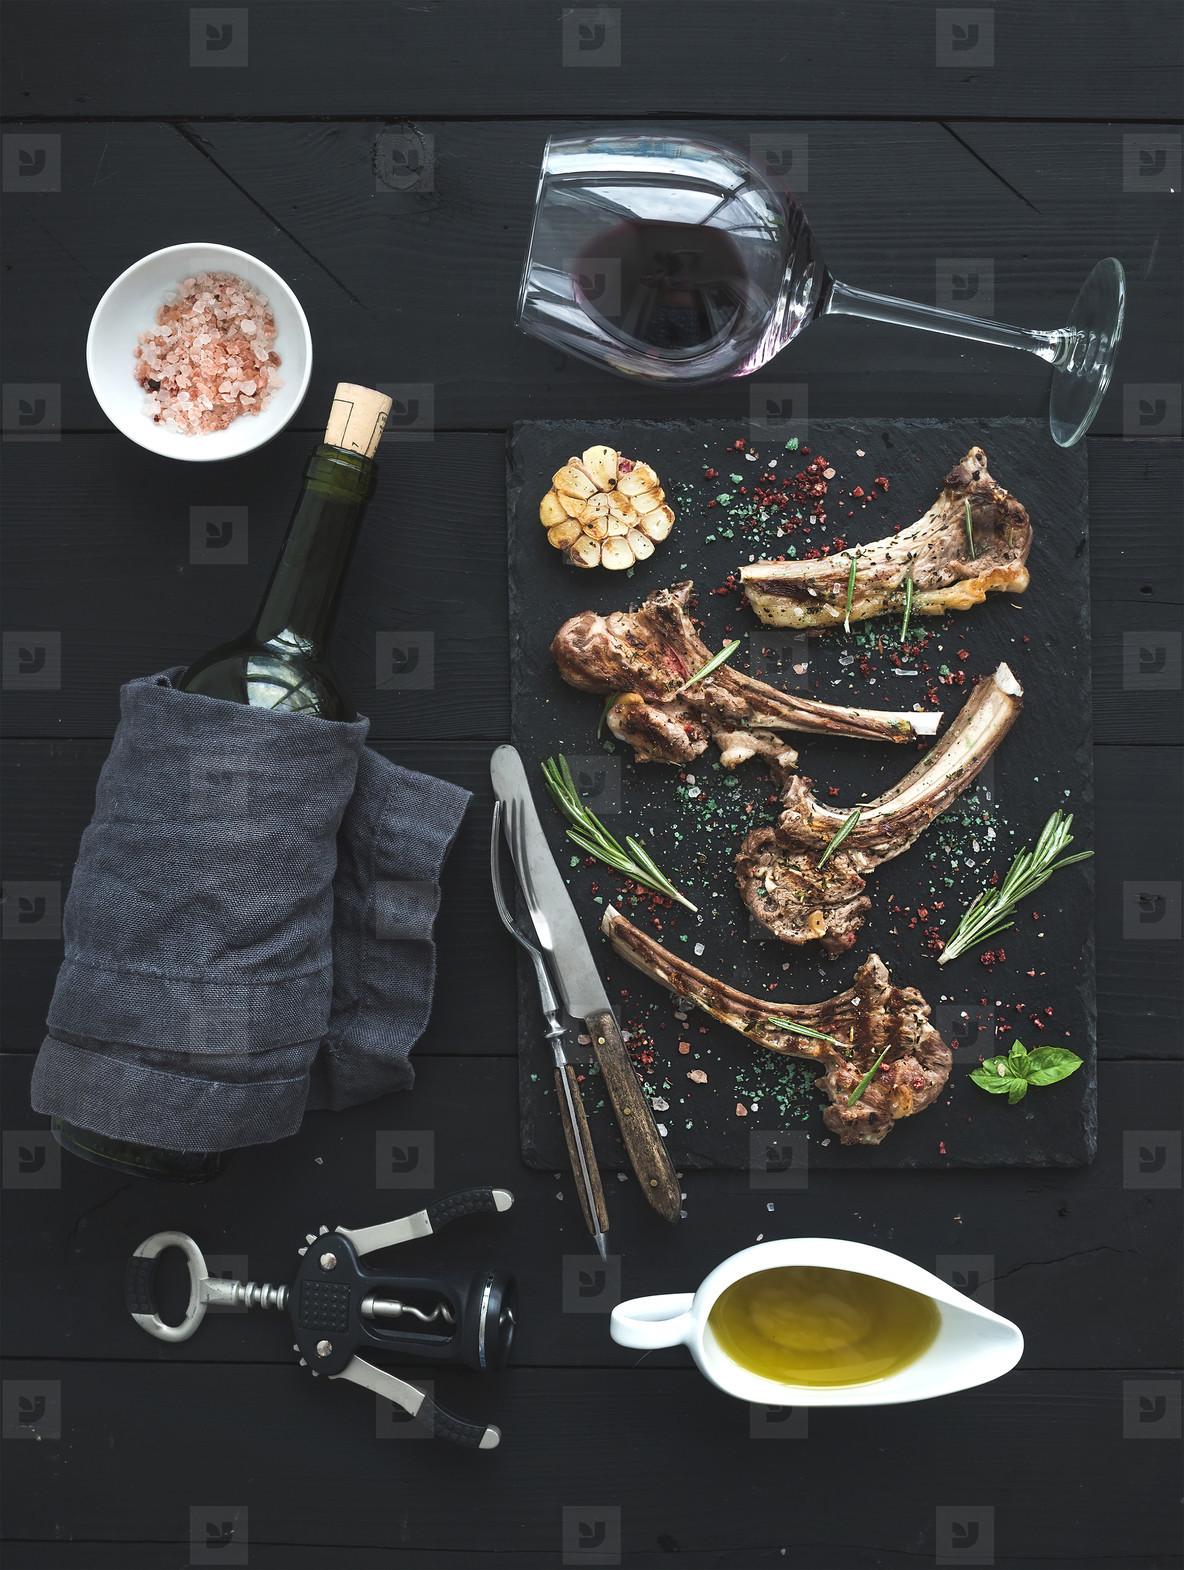 Grilled lamb chops  Rack of Lamb with garlic  rosemary  spices on slate tray  wine glass  oil in a saucer and bottle over black wood background